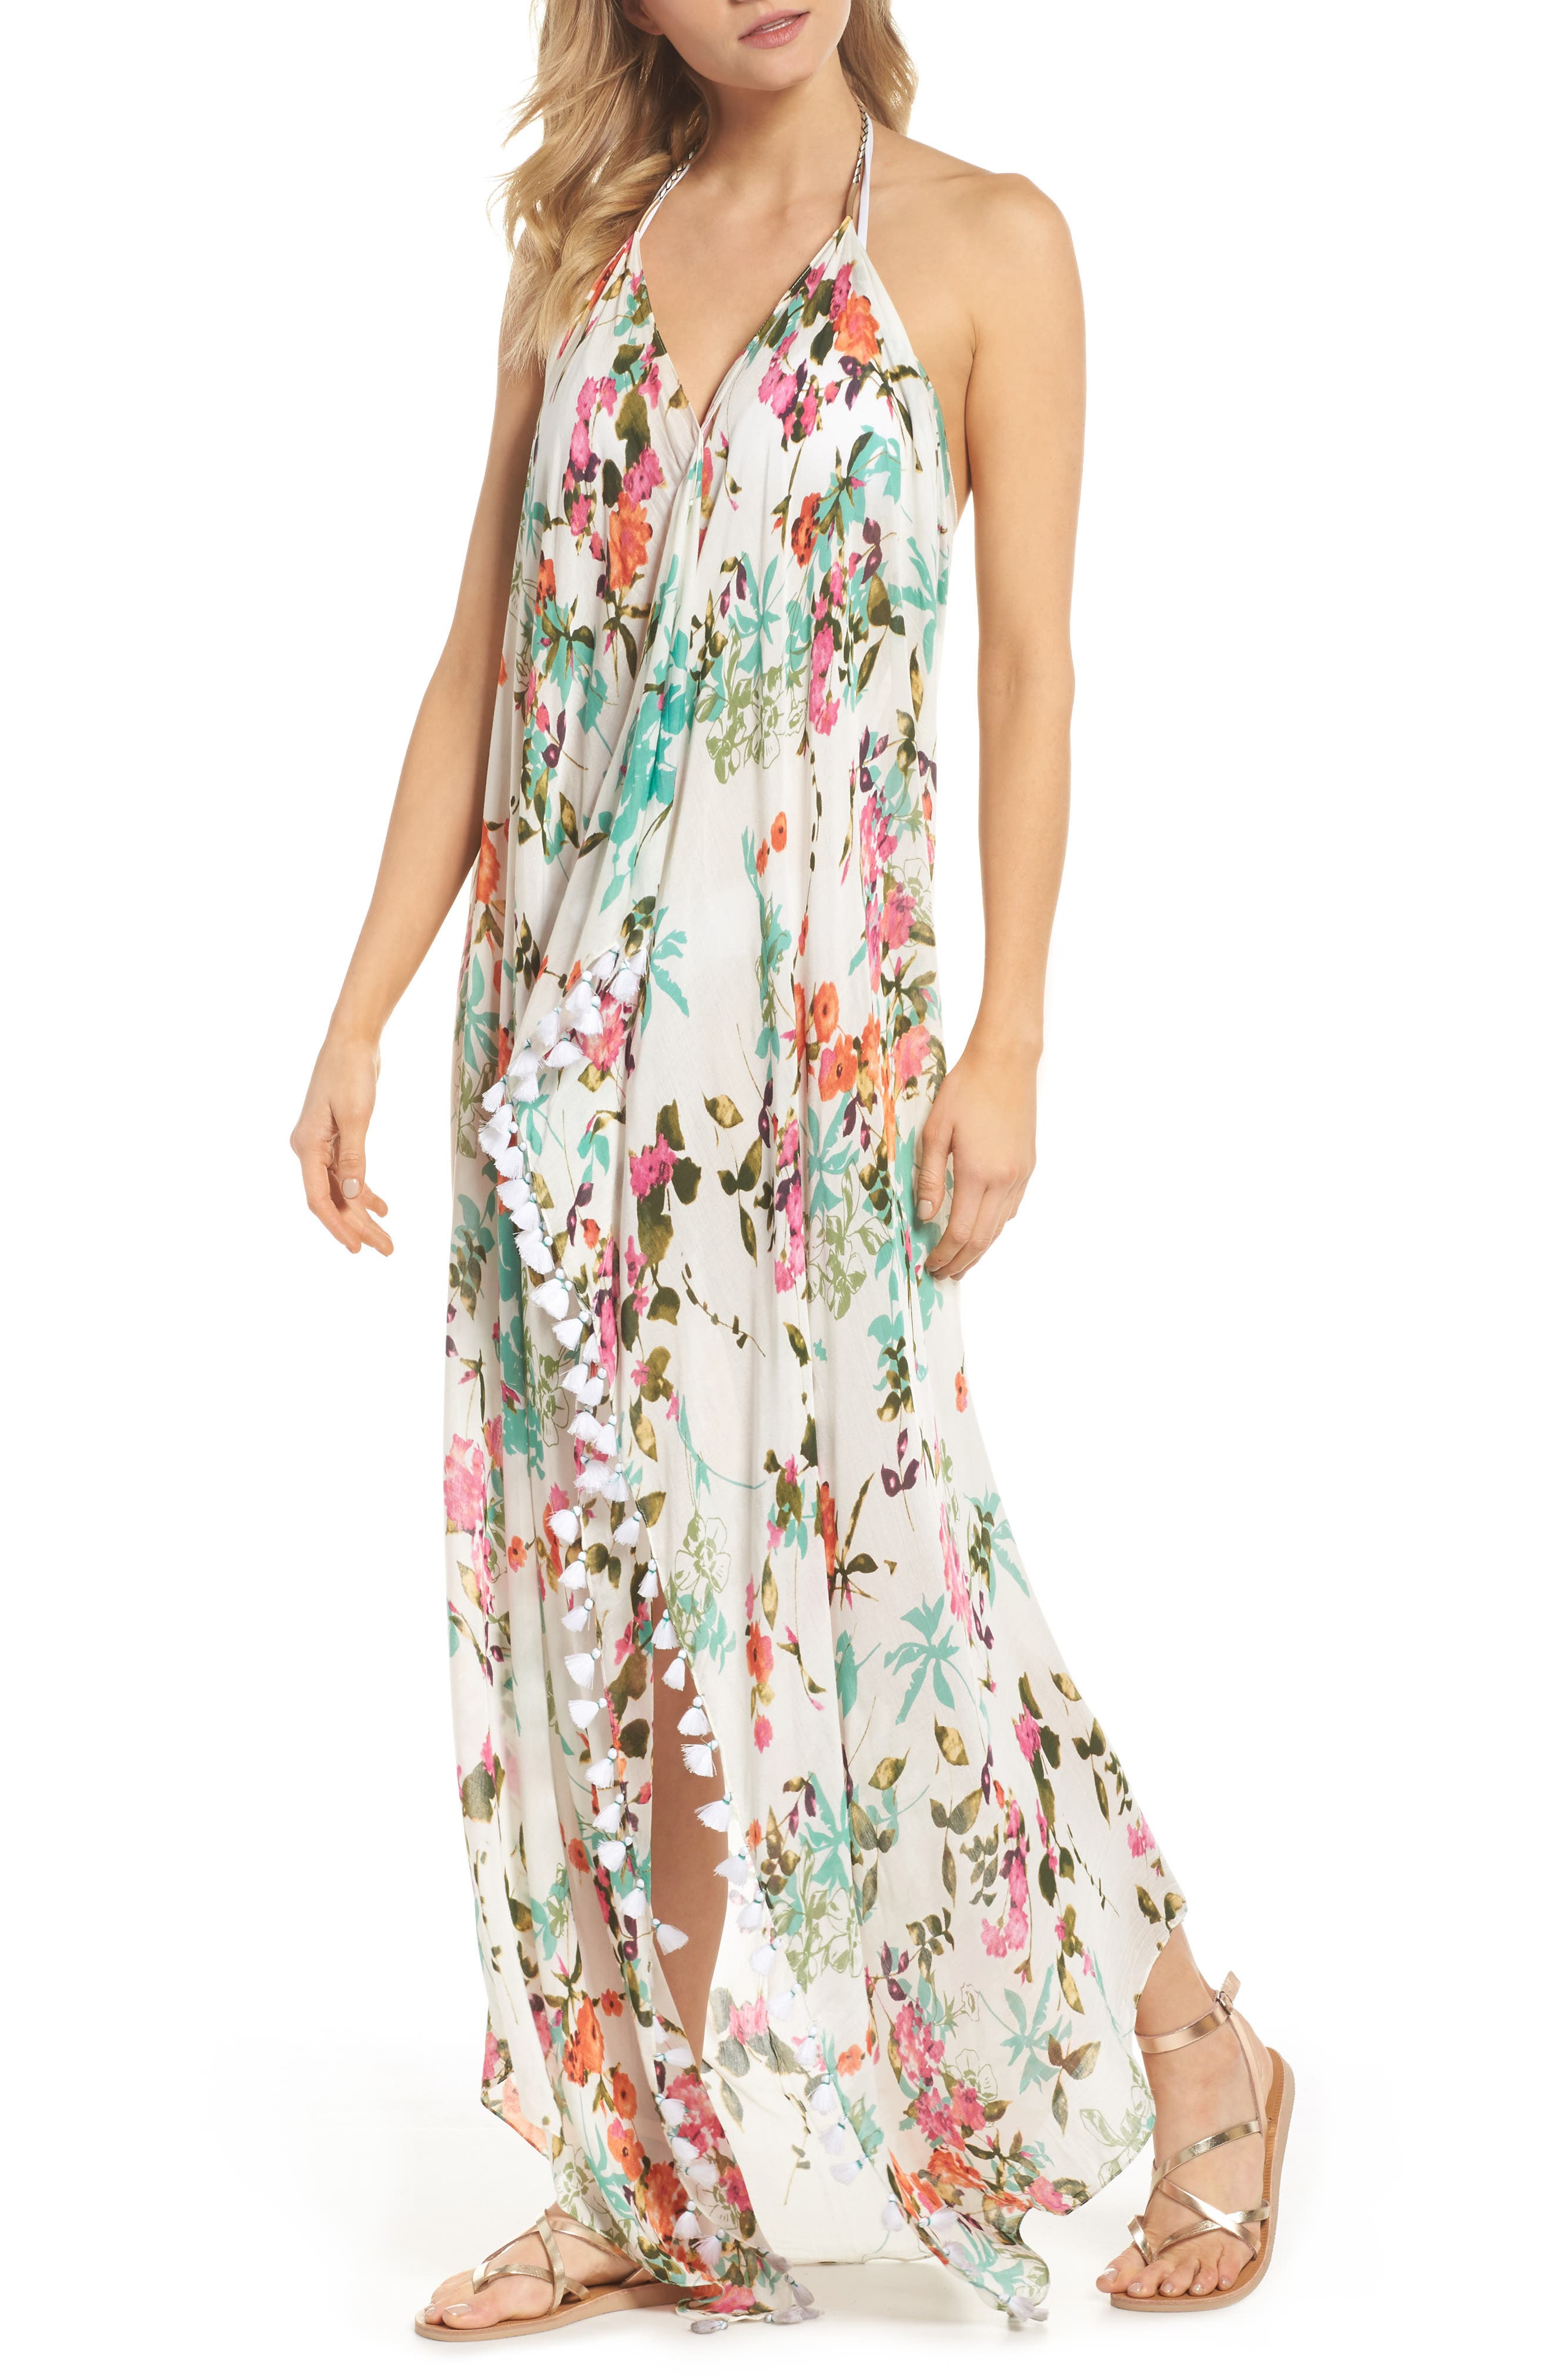 Beach to Street Cover-Up Dress,                             Main thumbnail 1, color,                             900